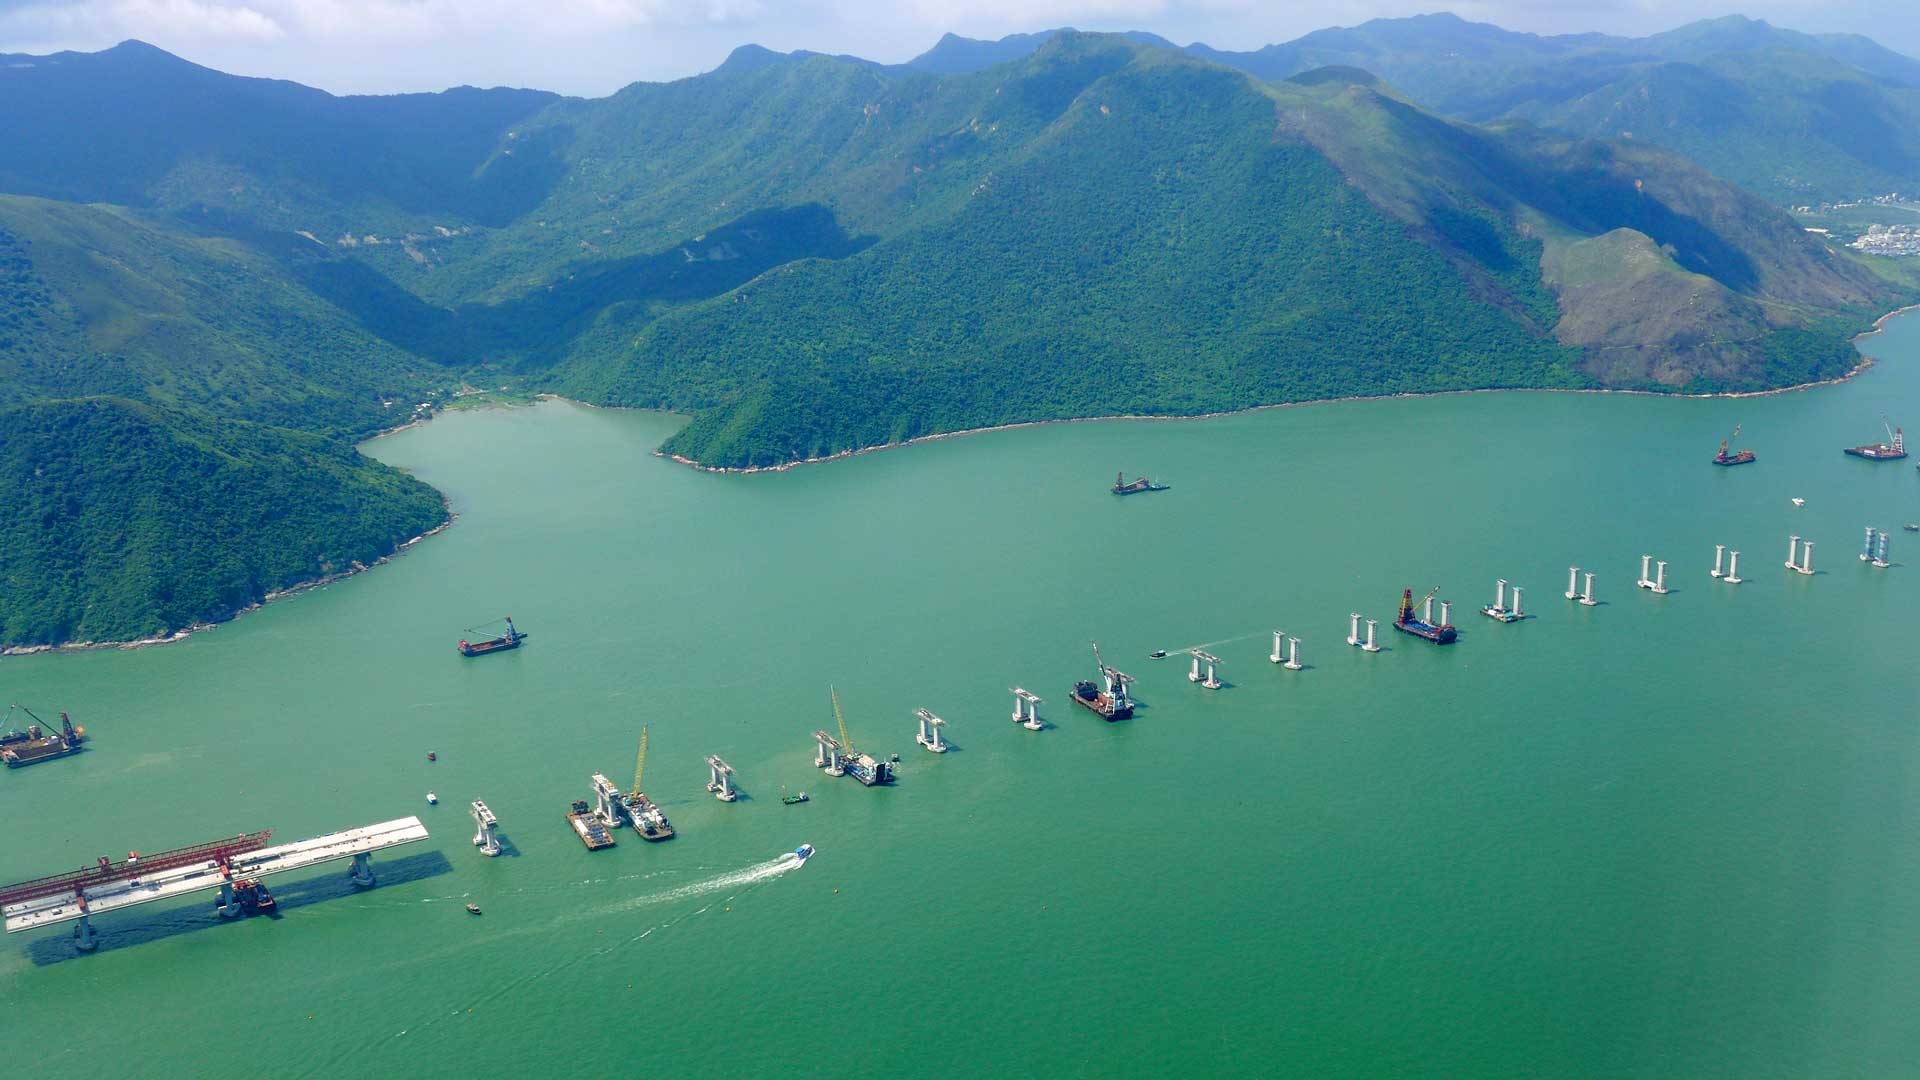 Hong Kong-Zhuhai-Macau Bridge under construction